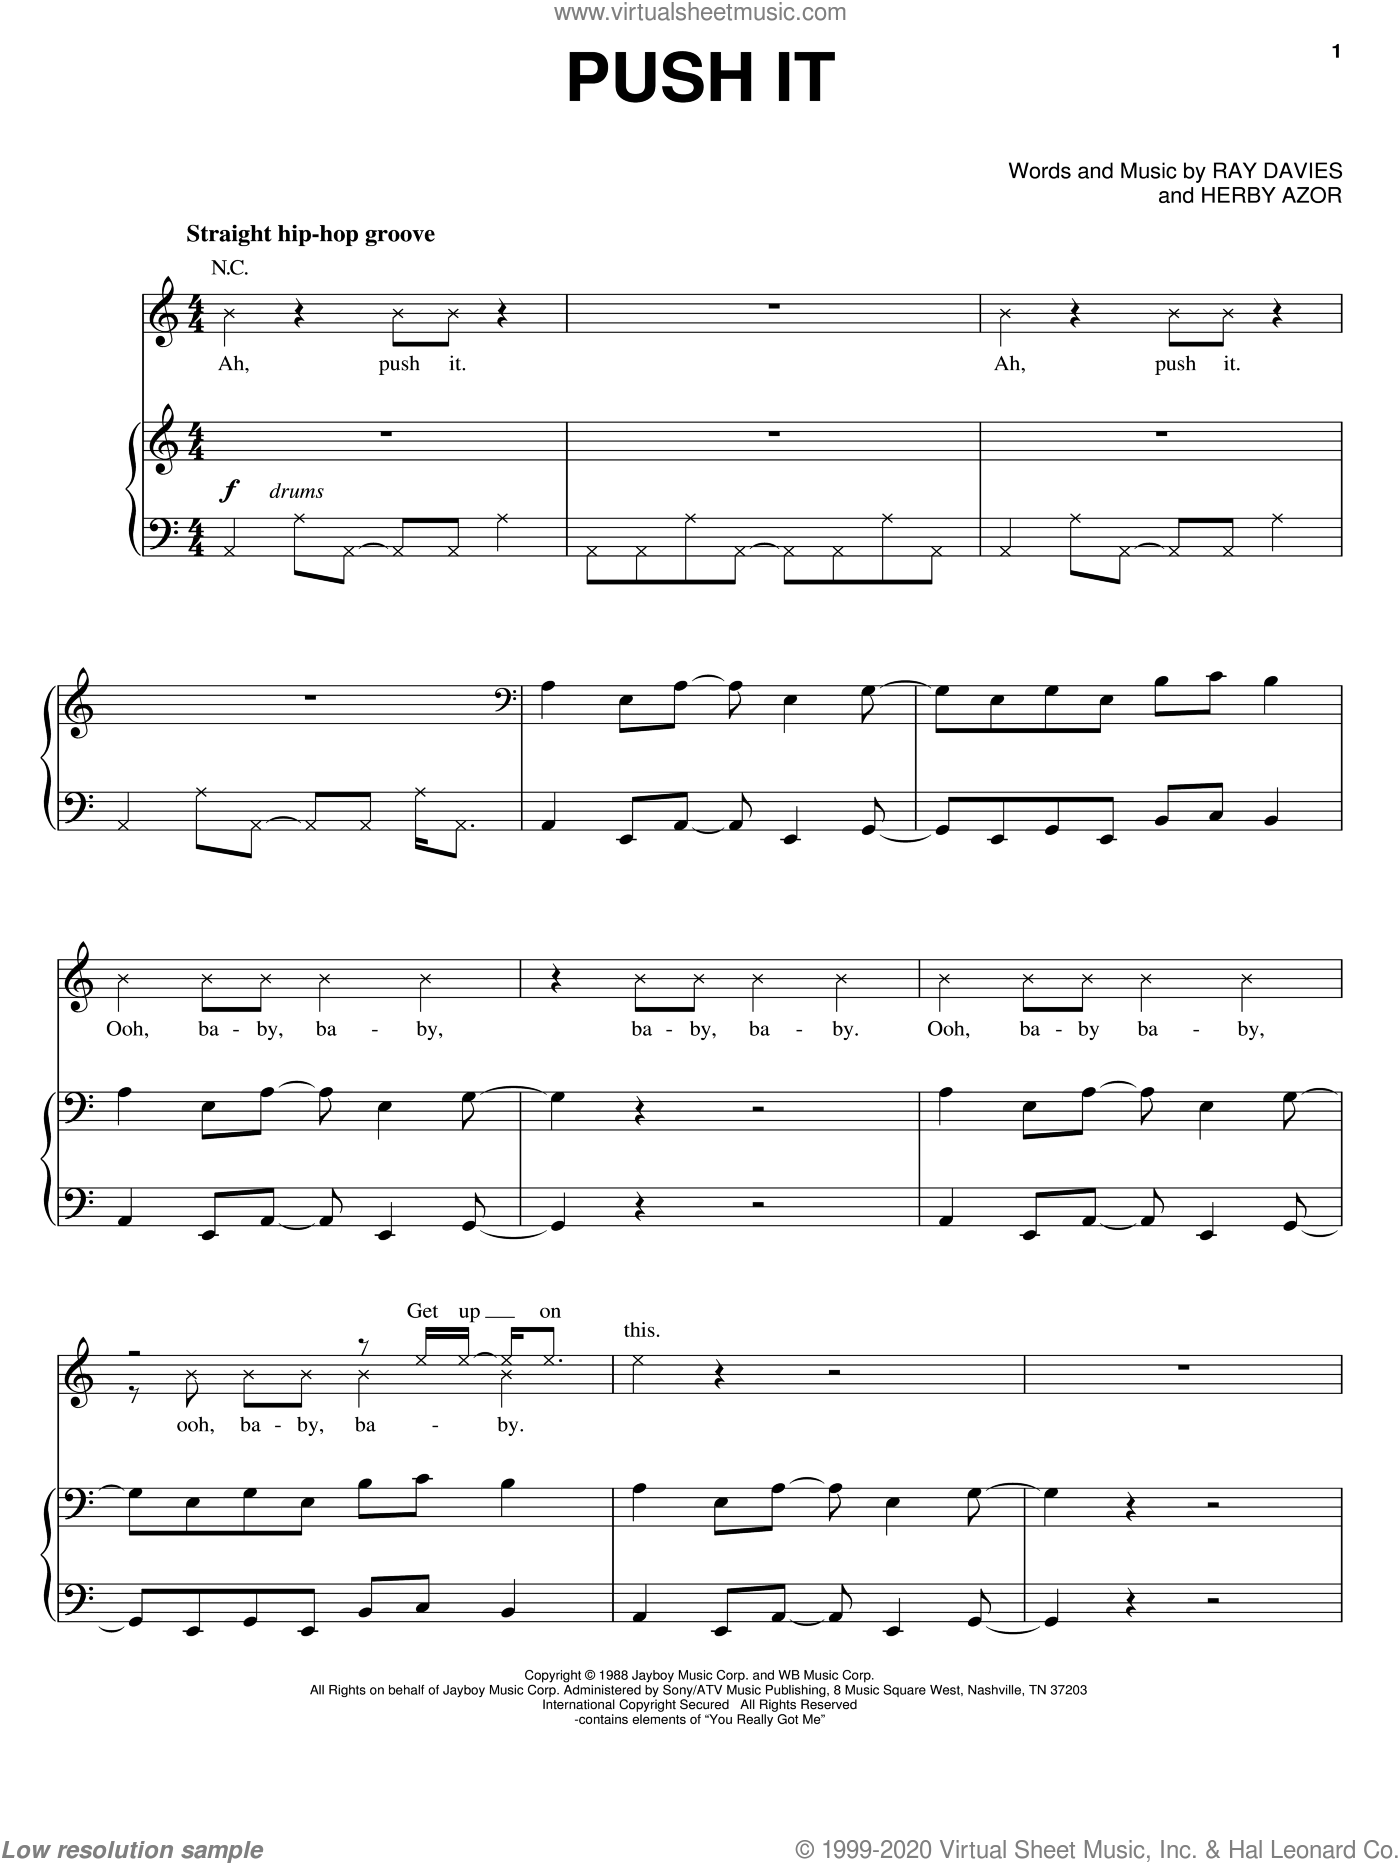 Push It sheet music for voice, piano or guitar by Ray Davies